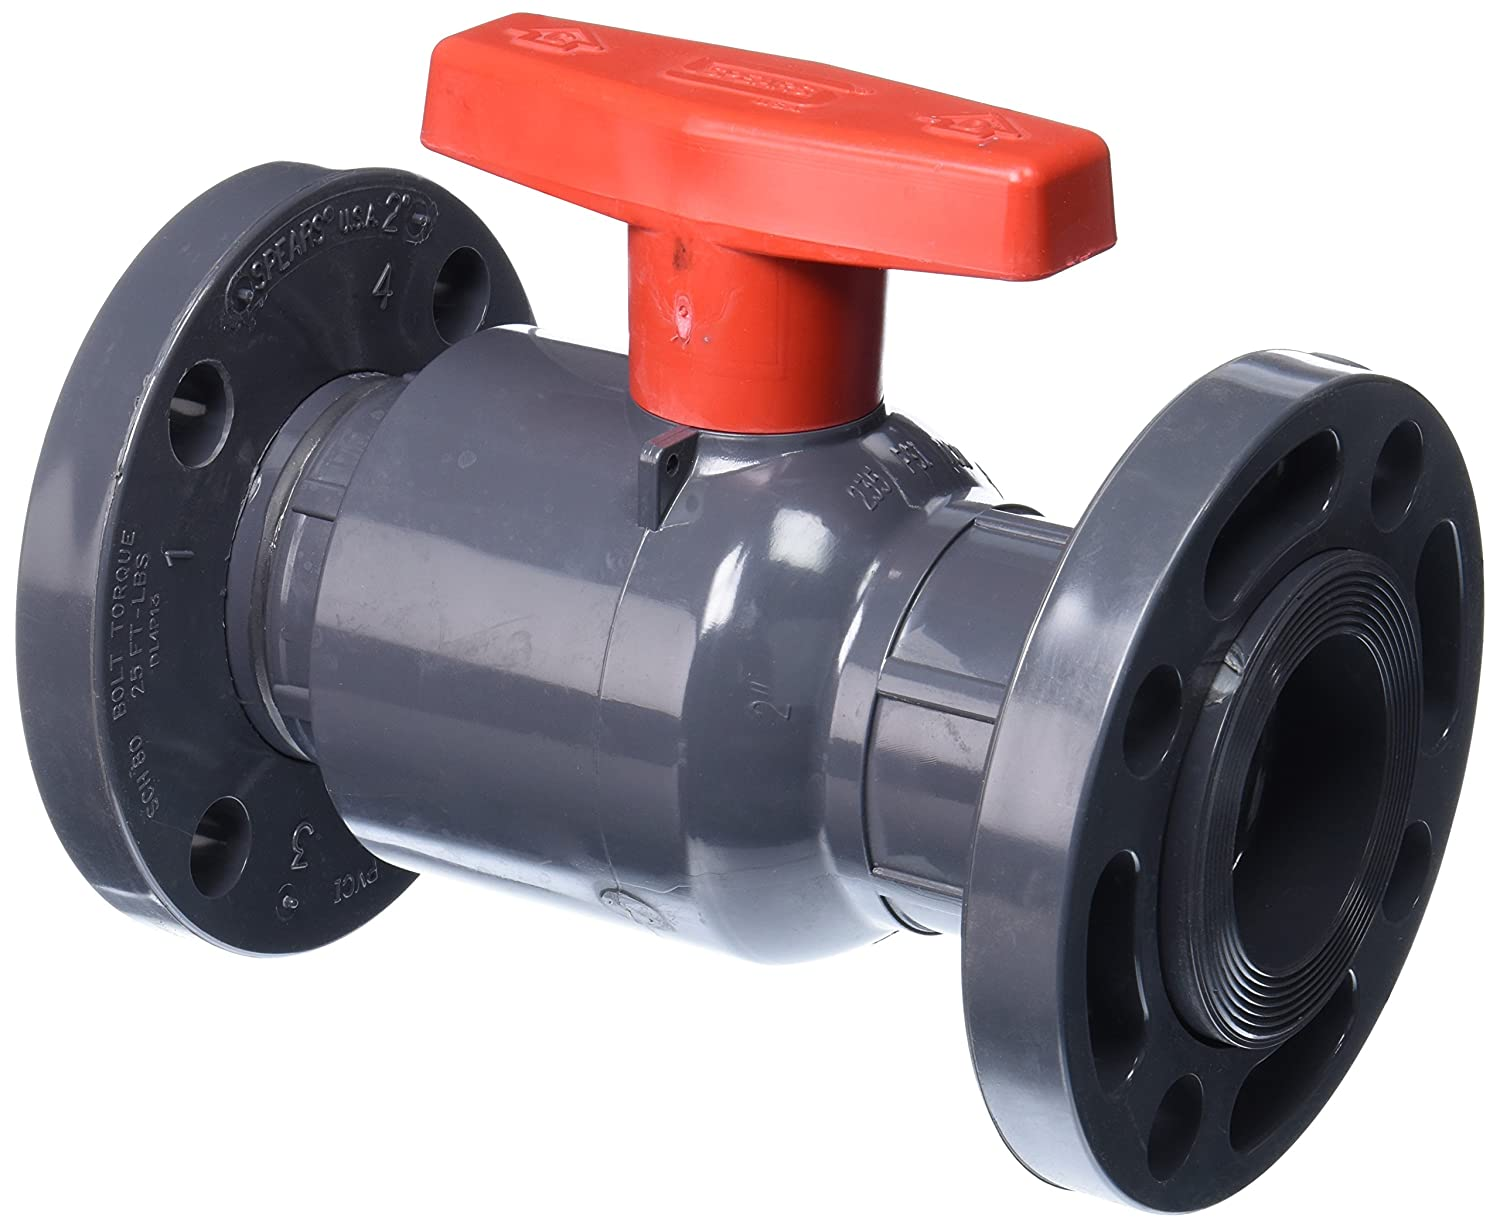 Spears 2123-020 PVC Schedule 80 Compact Ball Valves